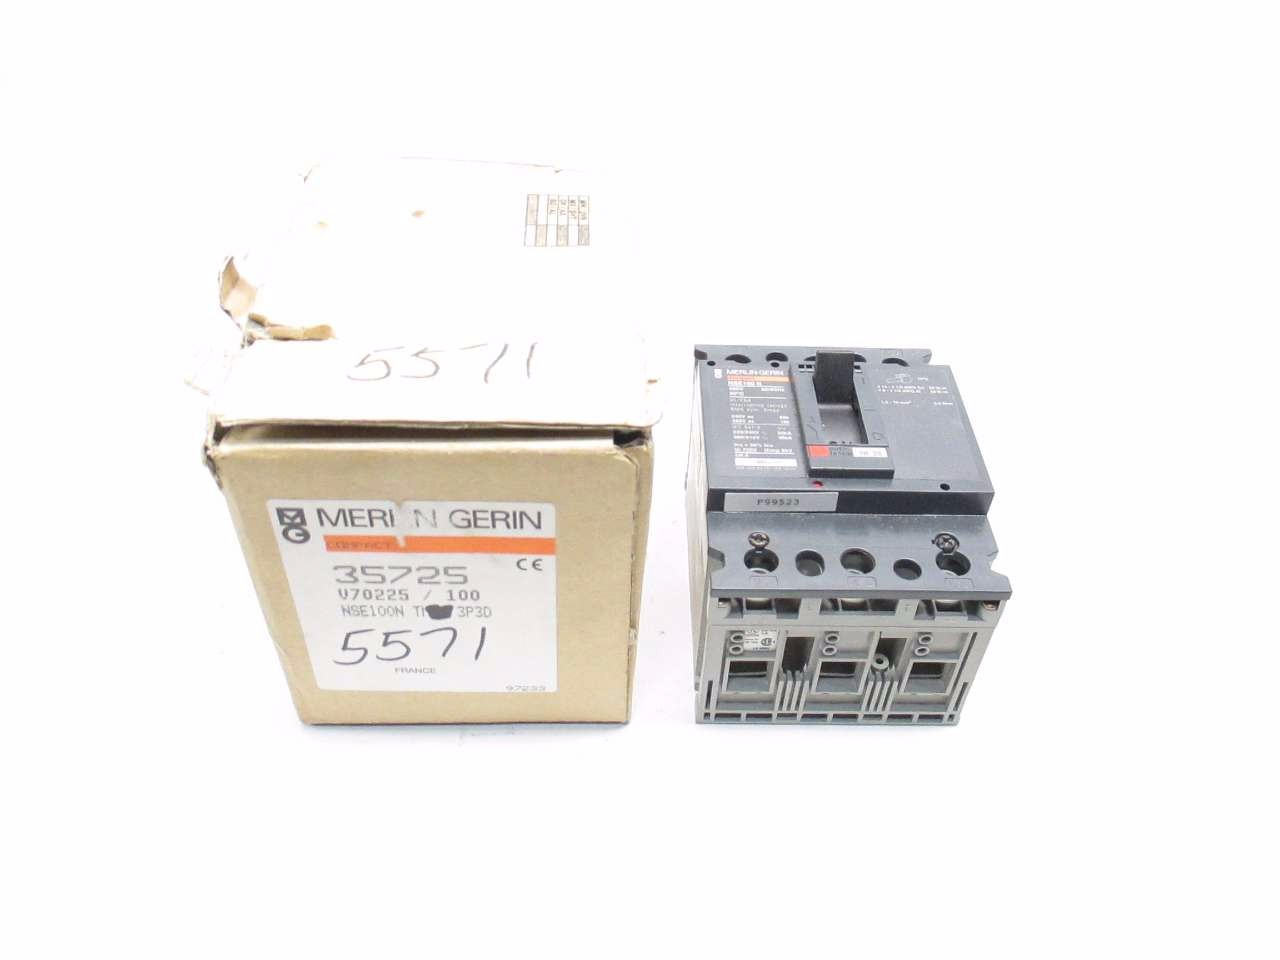 NEW MERLIN GERIN 100 A CIRCUIT BREAKER